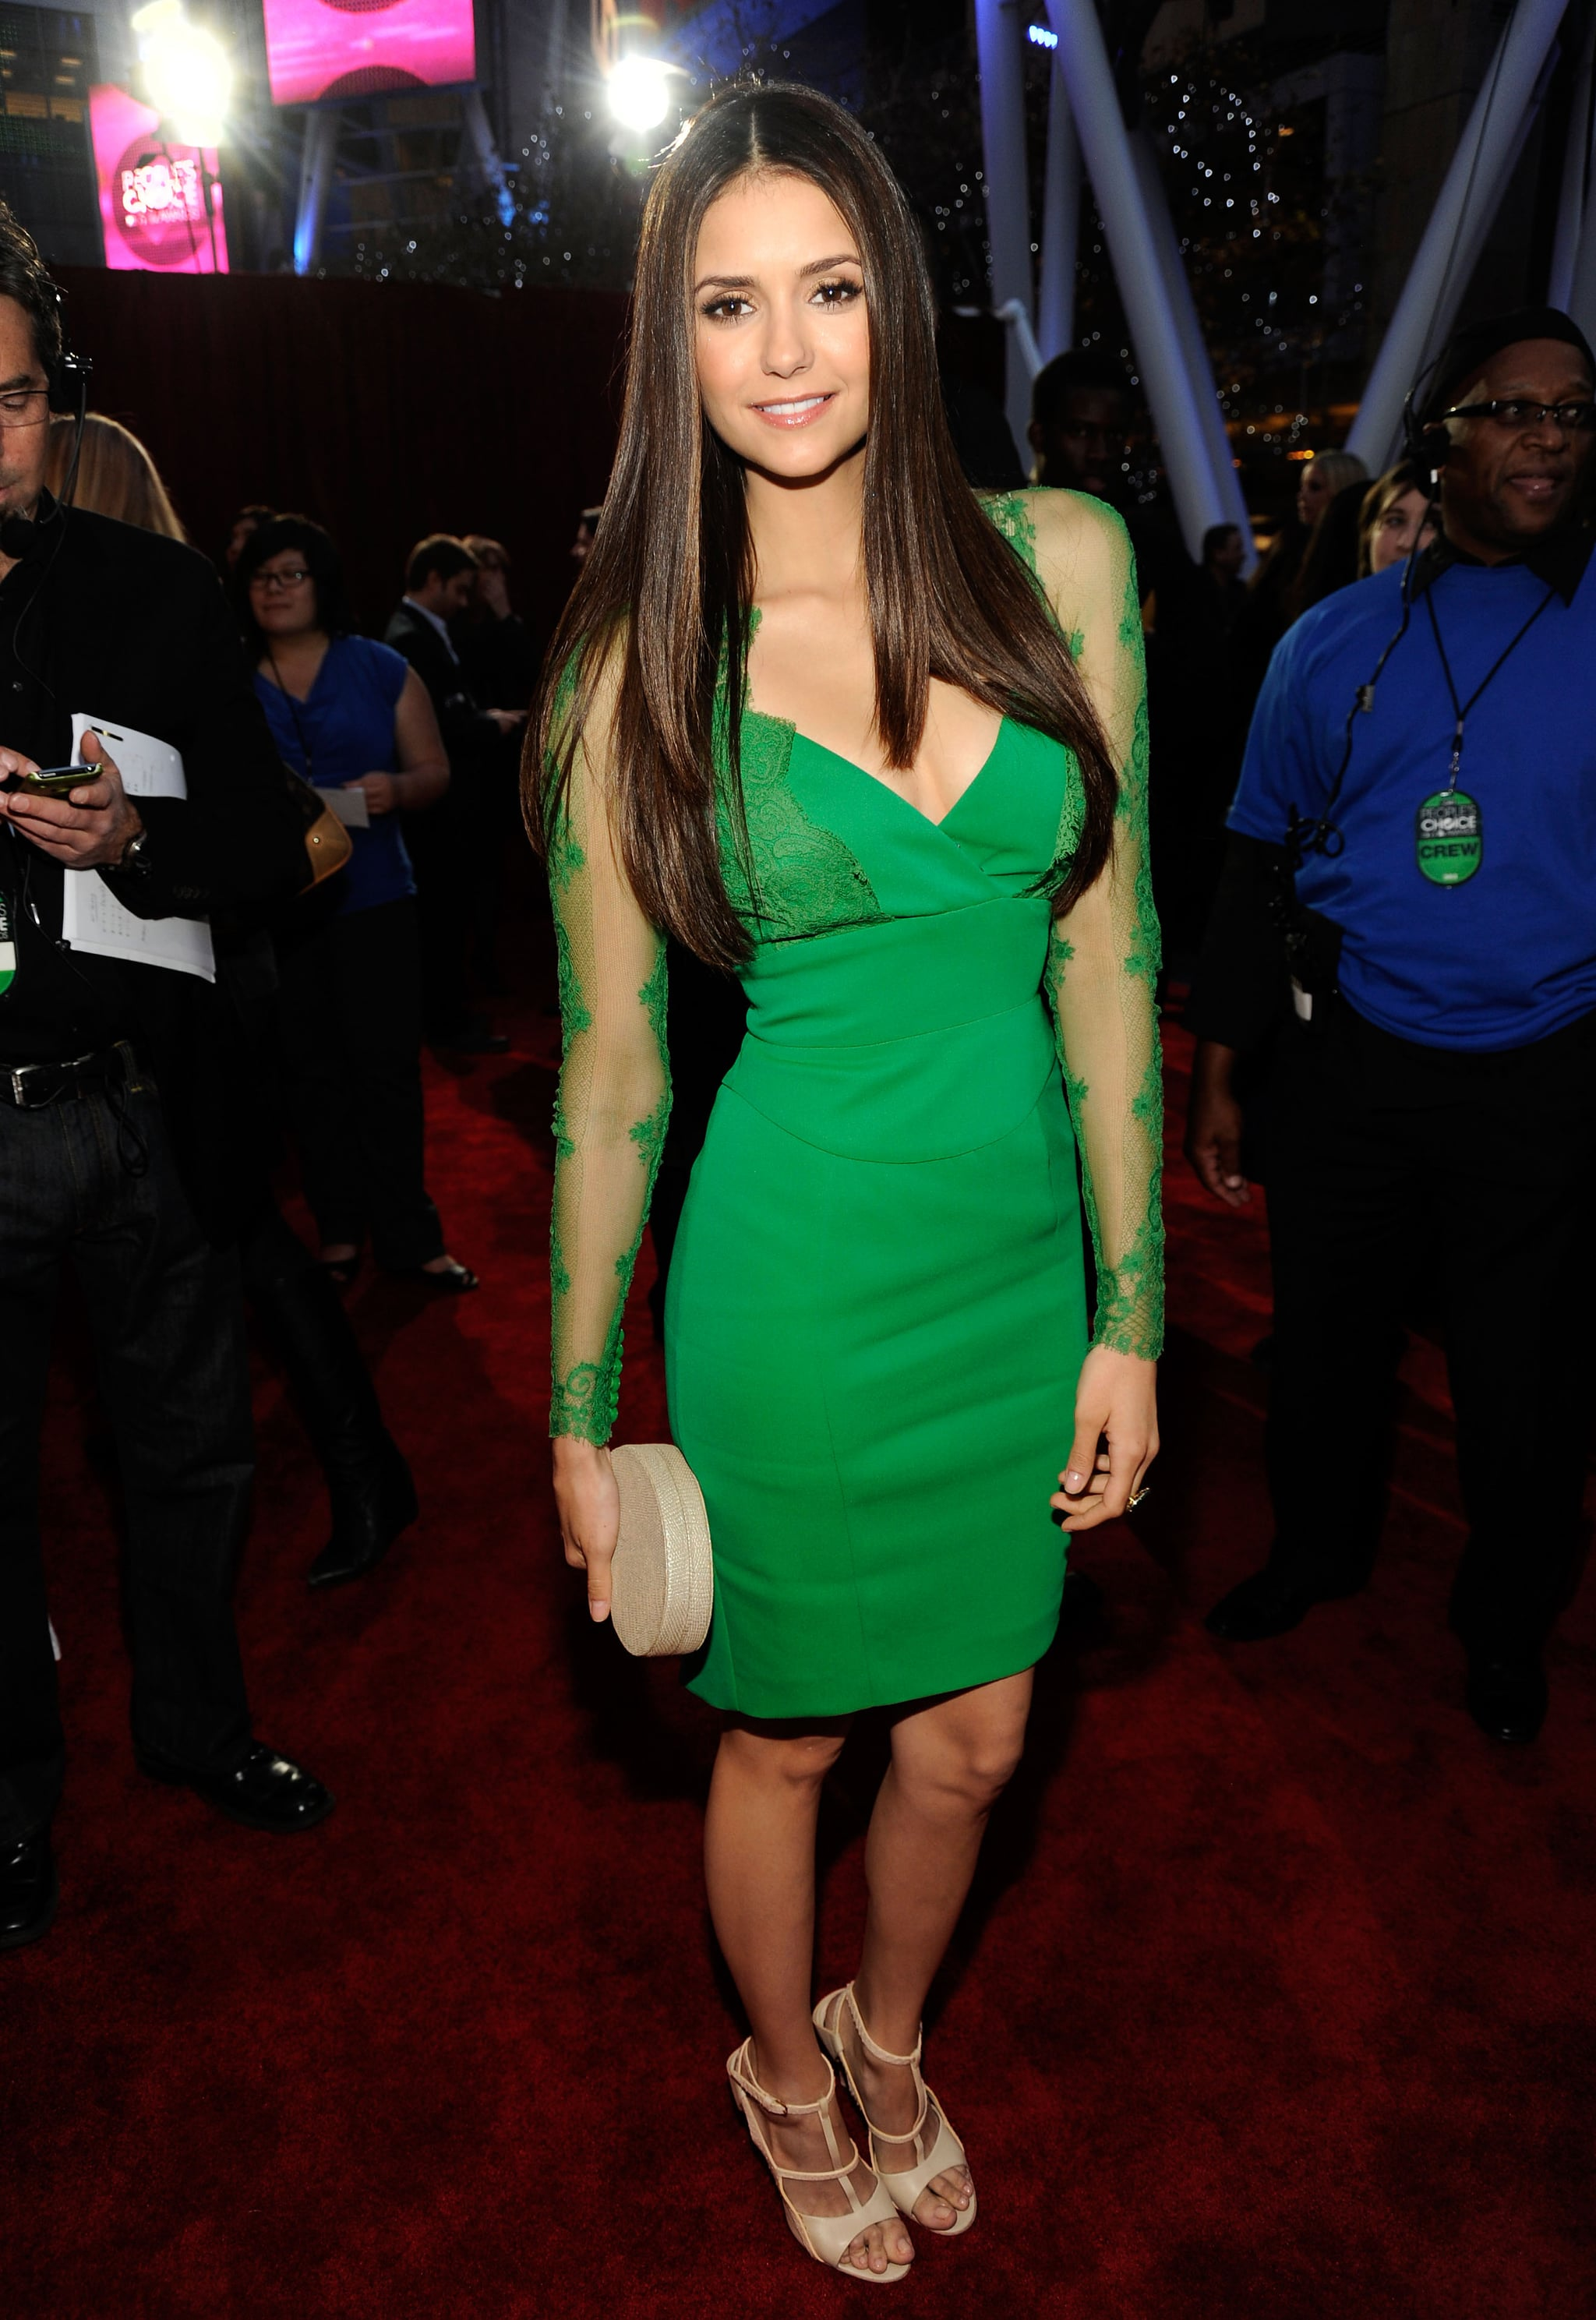 For the 2012 People's Choice Awards, Nina made us green with envy in her lace-sleeved Elie Saab cocktail dress.